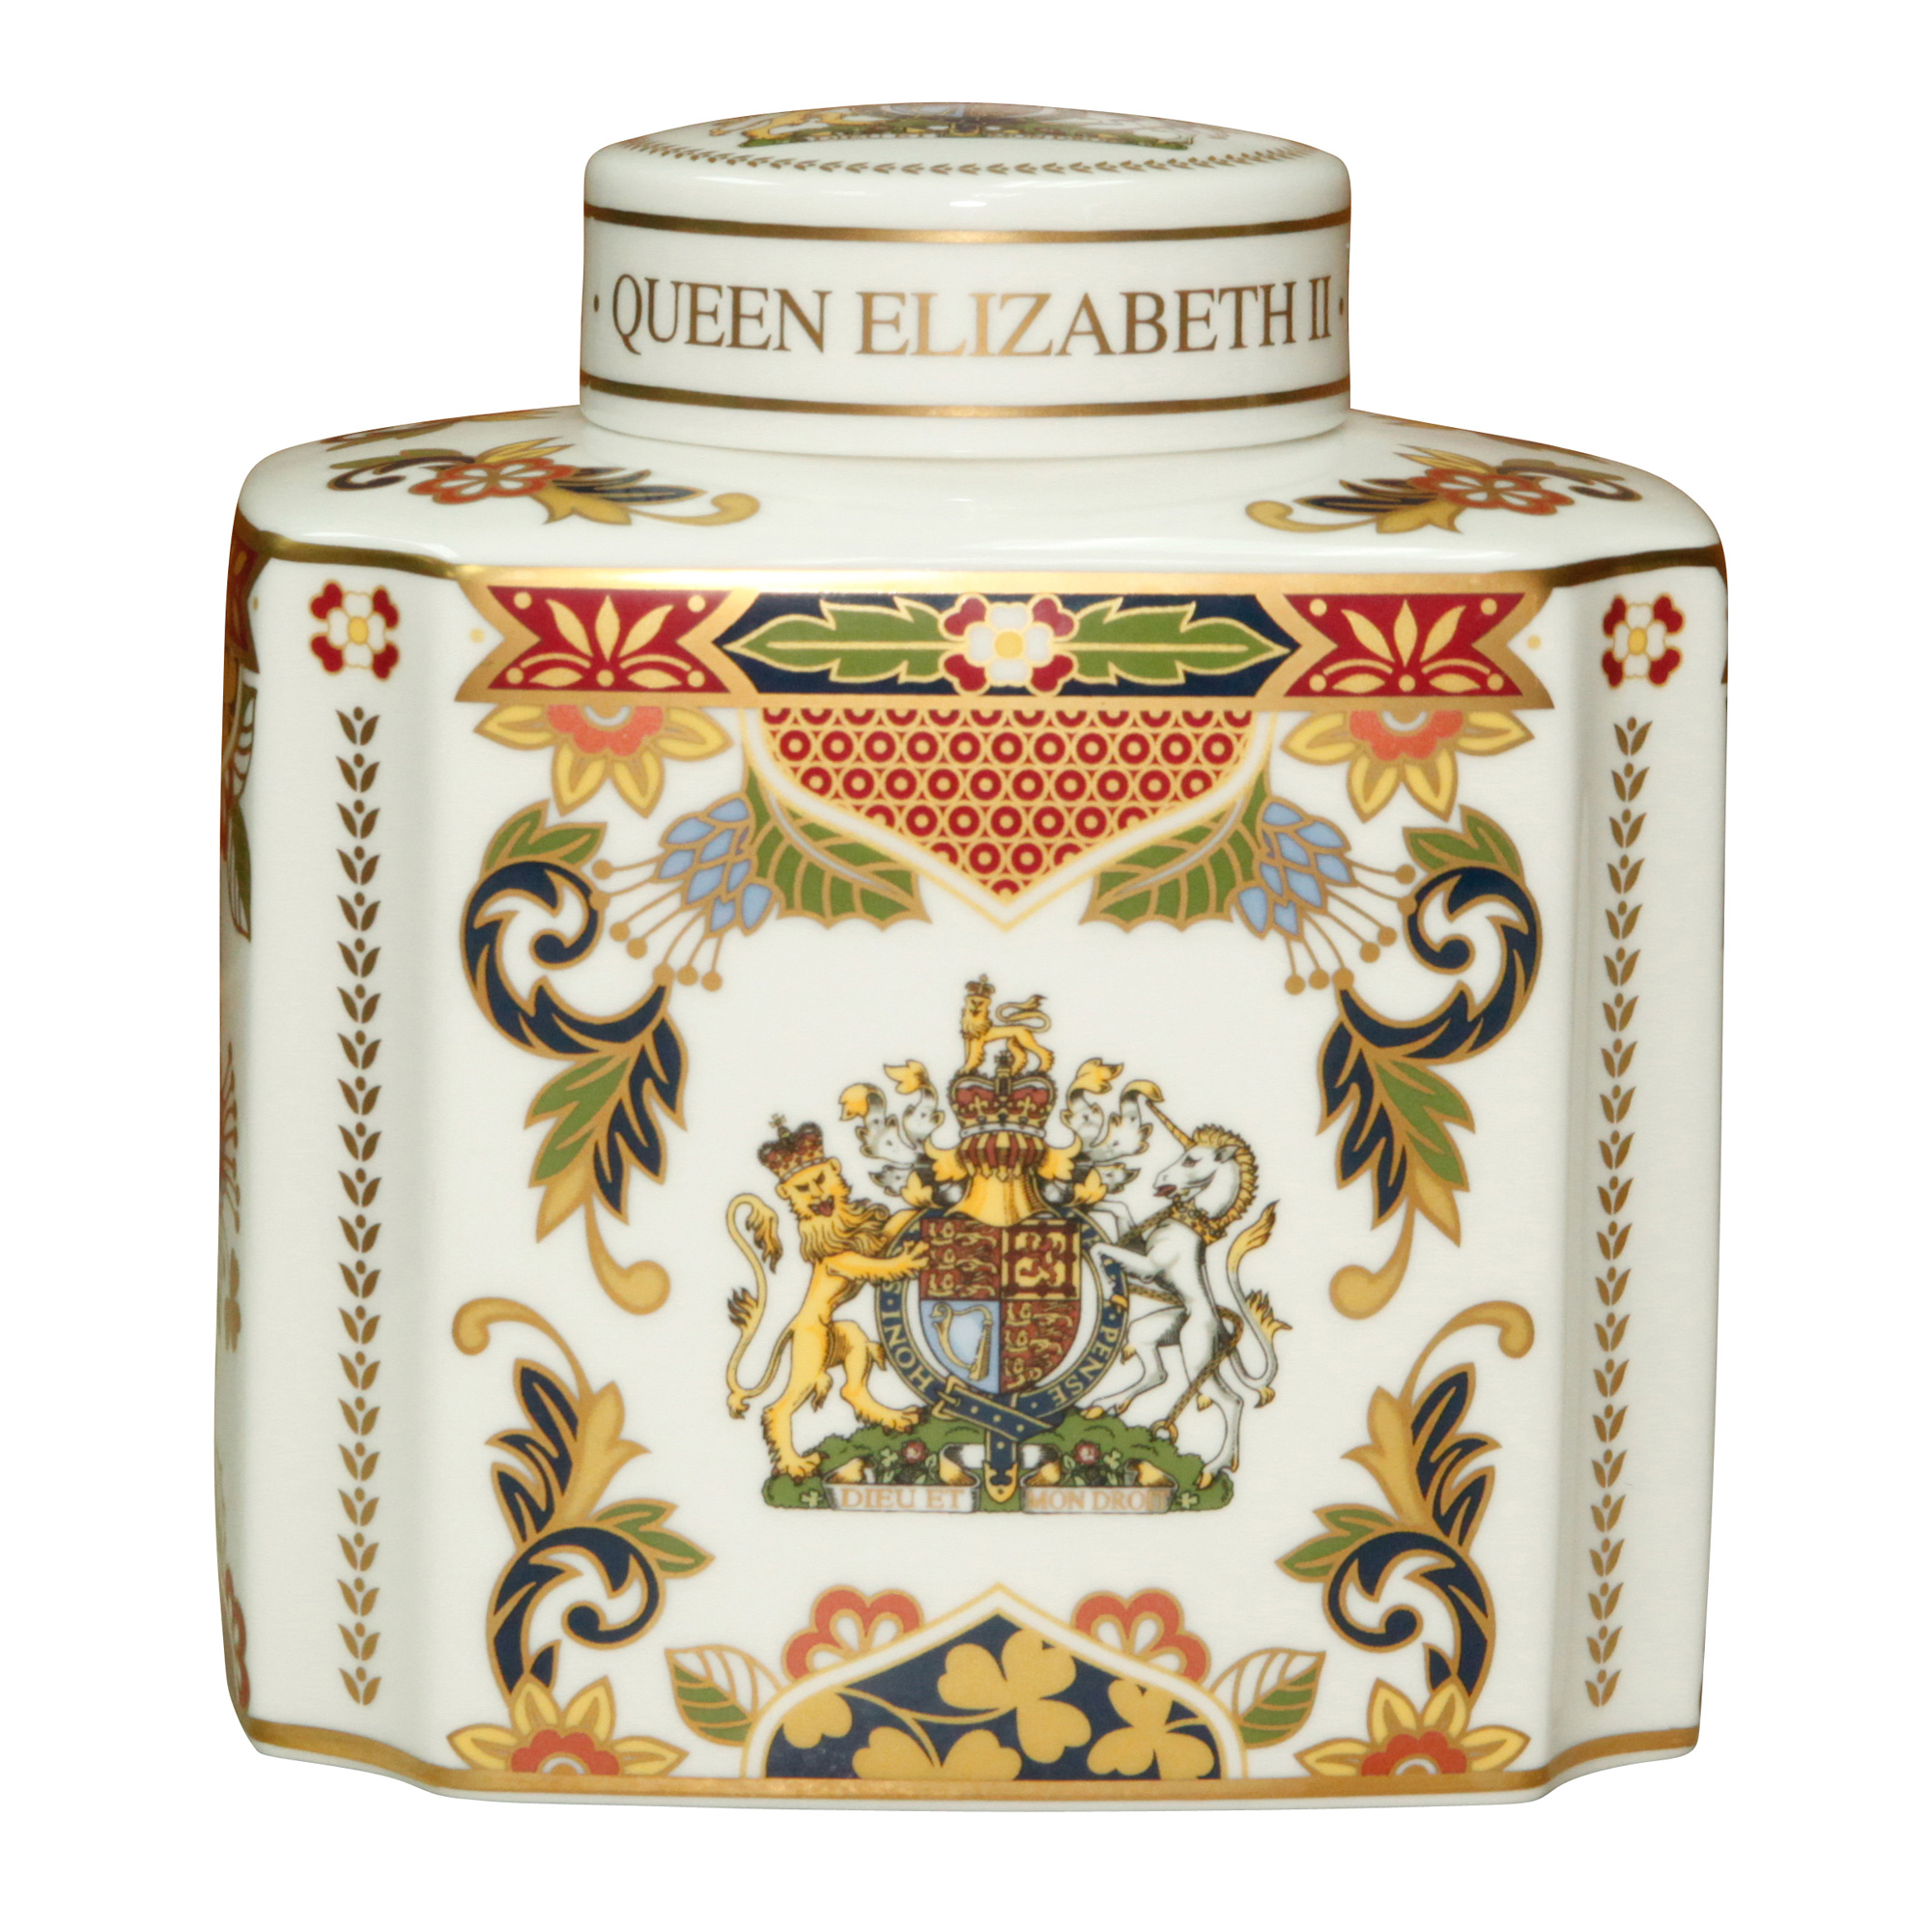 Elizabeth II Tea Caddy - Royal Doulton Commemorative